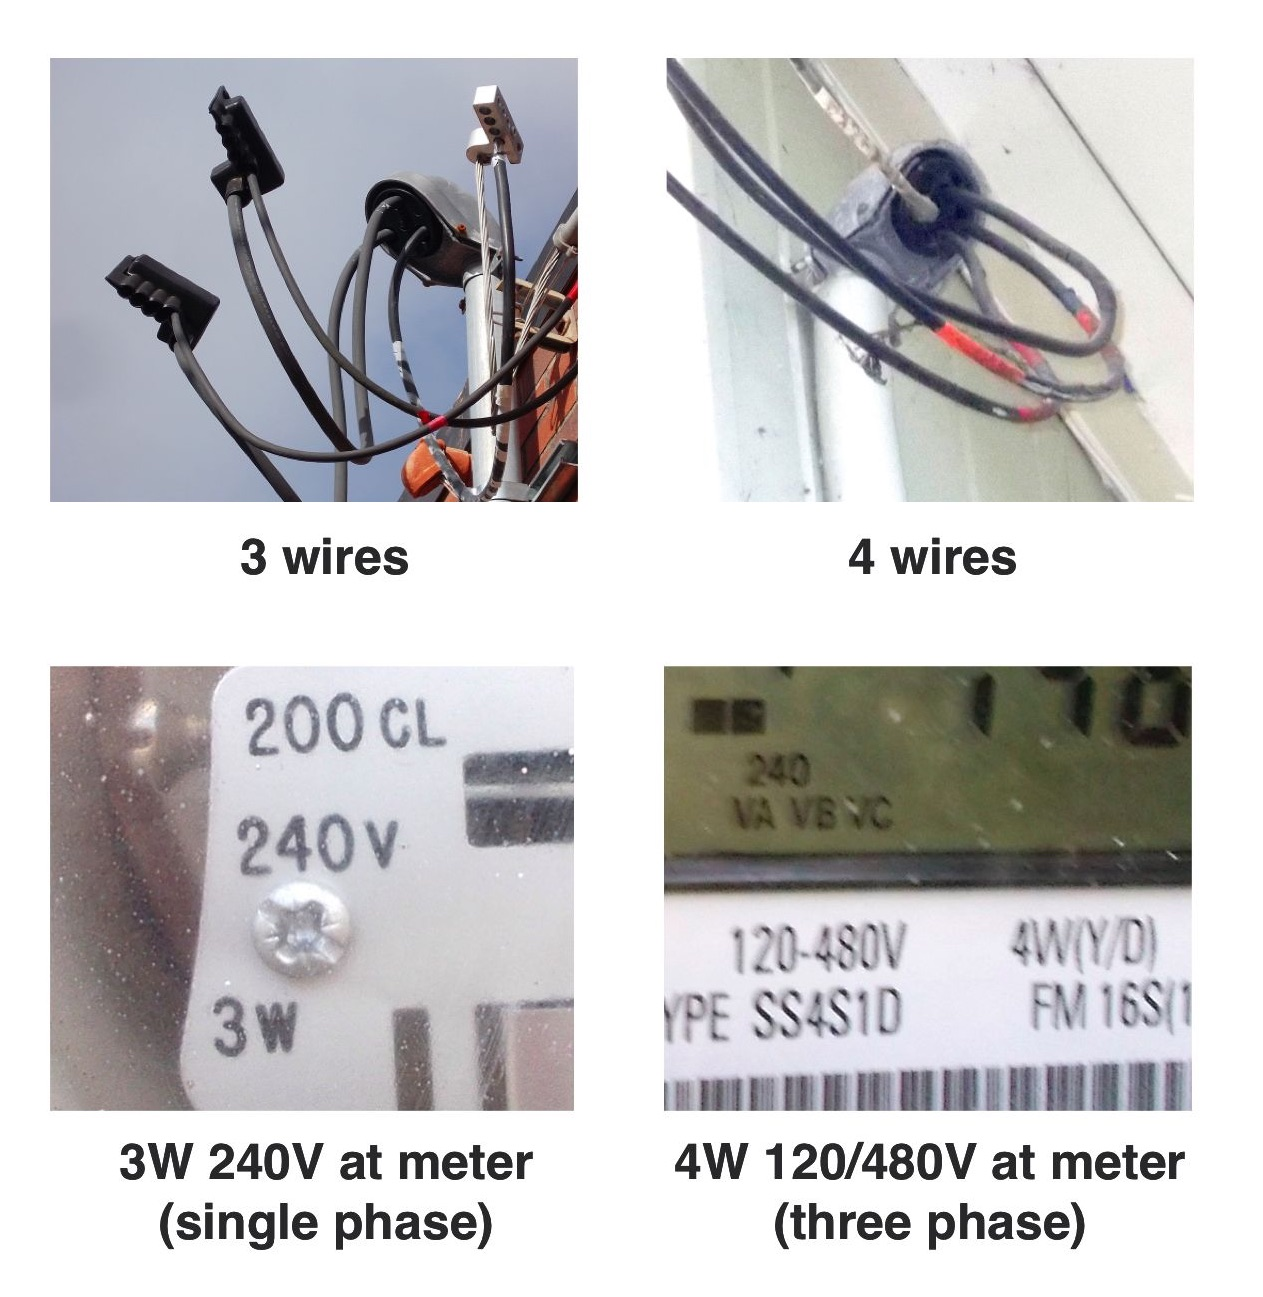 What Is A Reliable Way To Tell If The Electrical Service 3 Phase 4 Wire Wiring Or Single